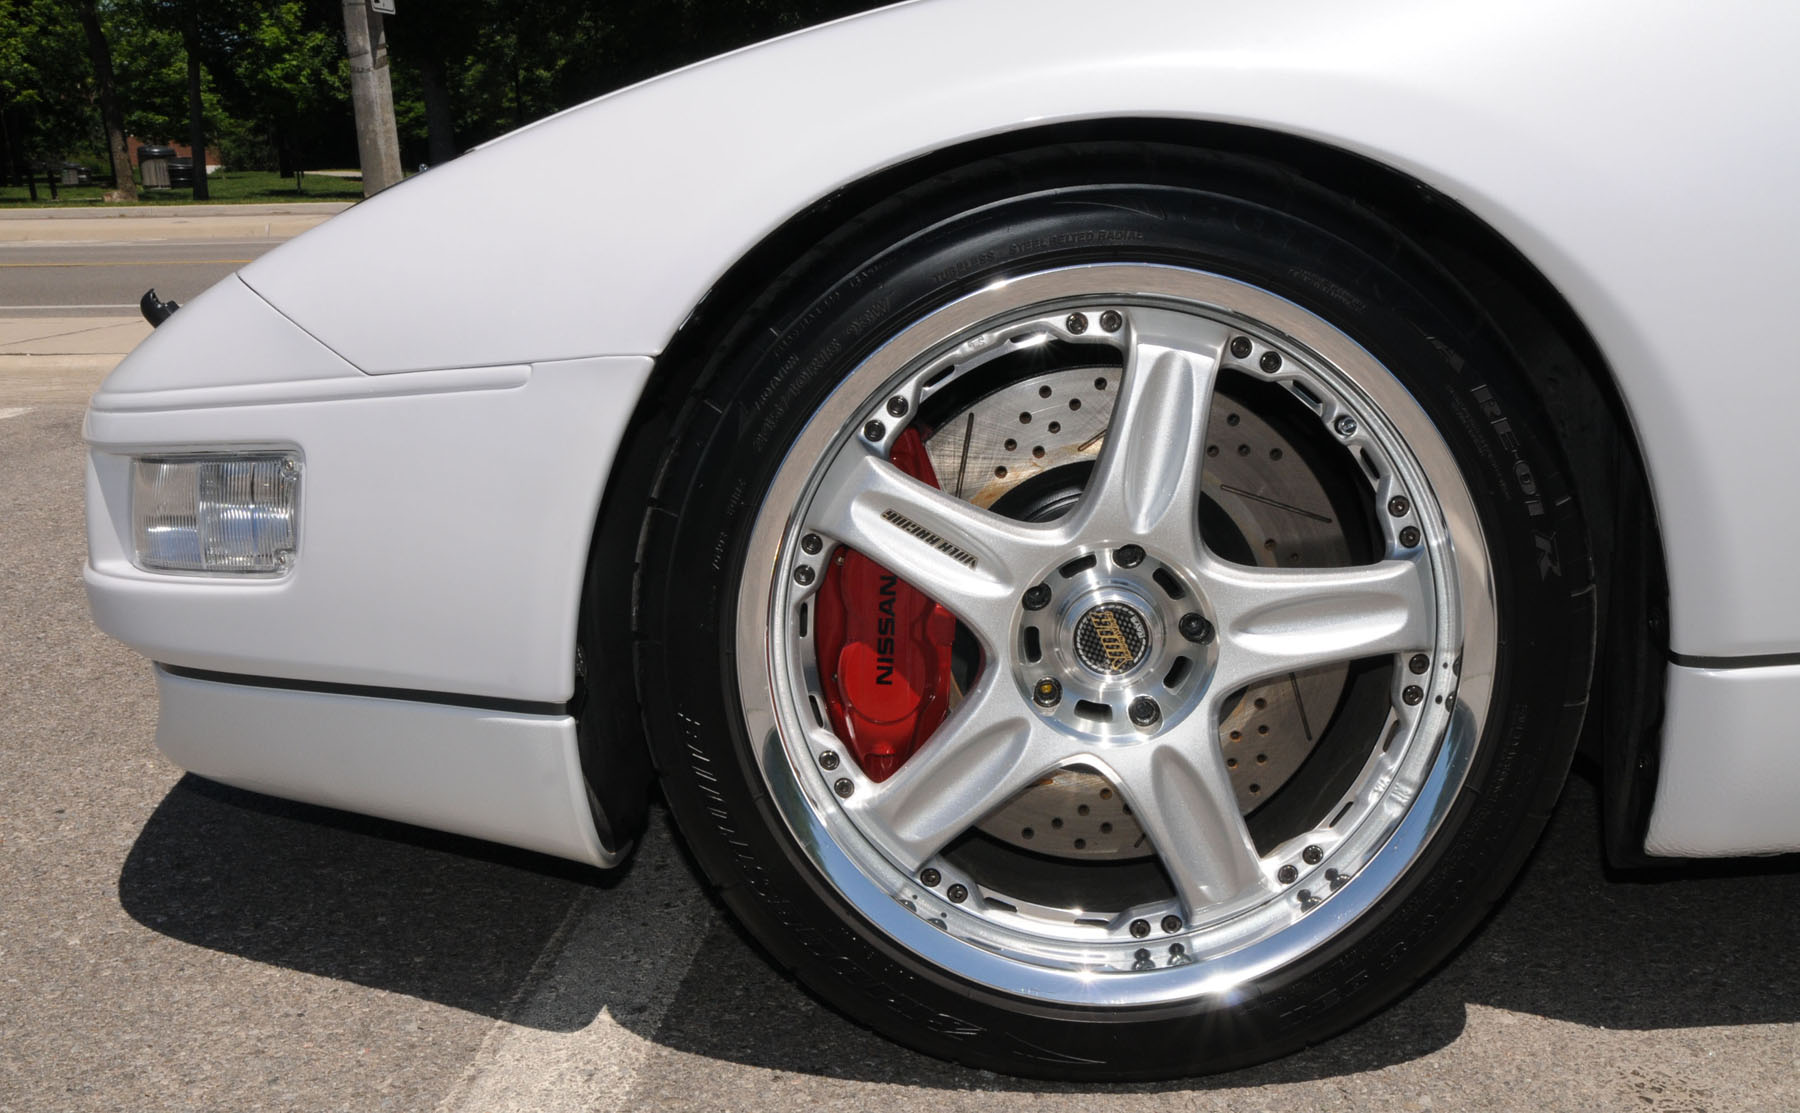 Image result for Customize the rim of your car for the different looks